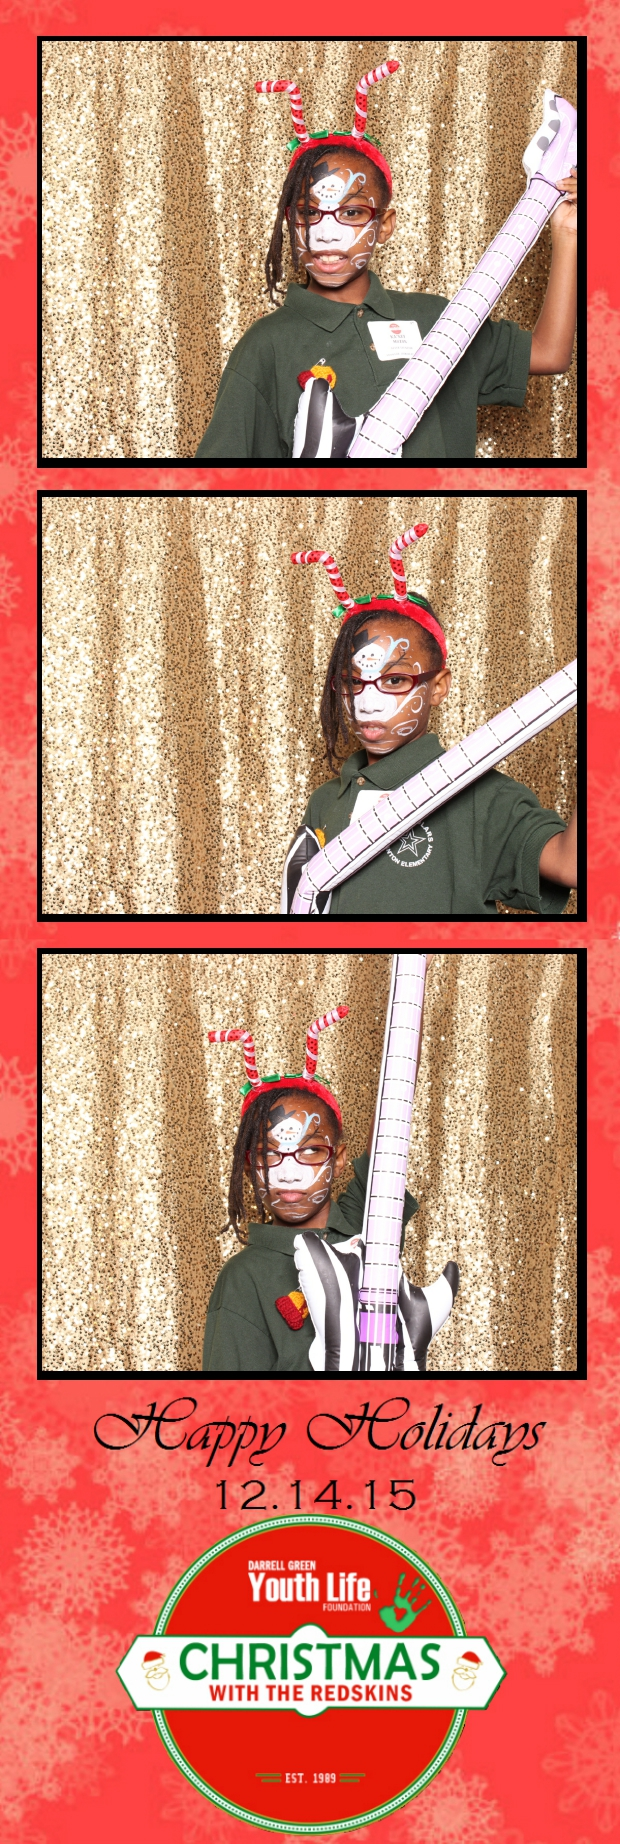 Guest House Events Photo Booth DGYLF Strips (60).jpg